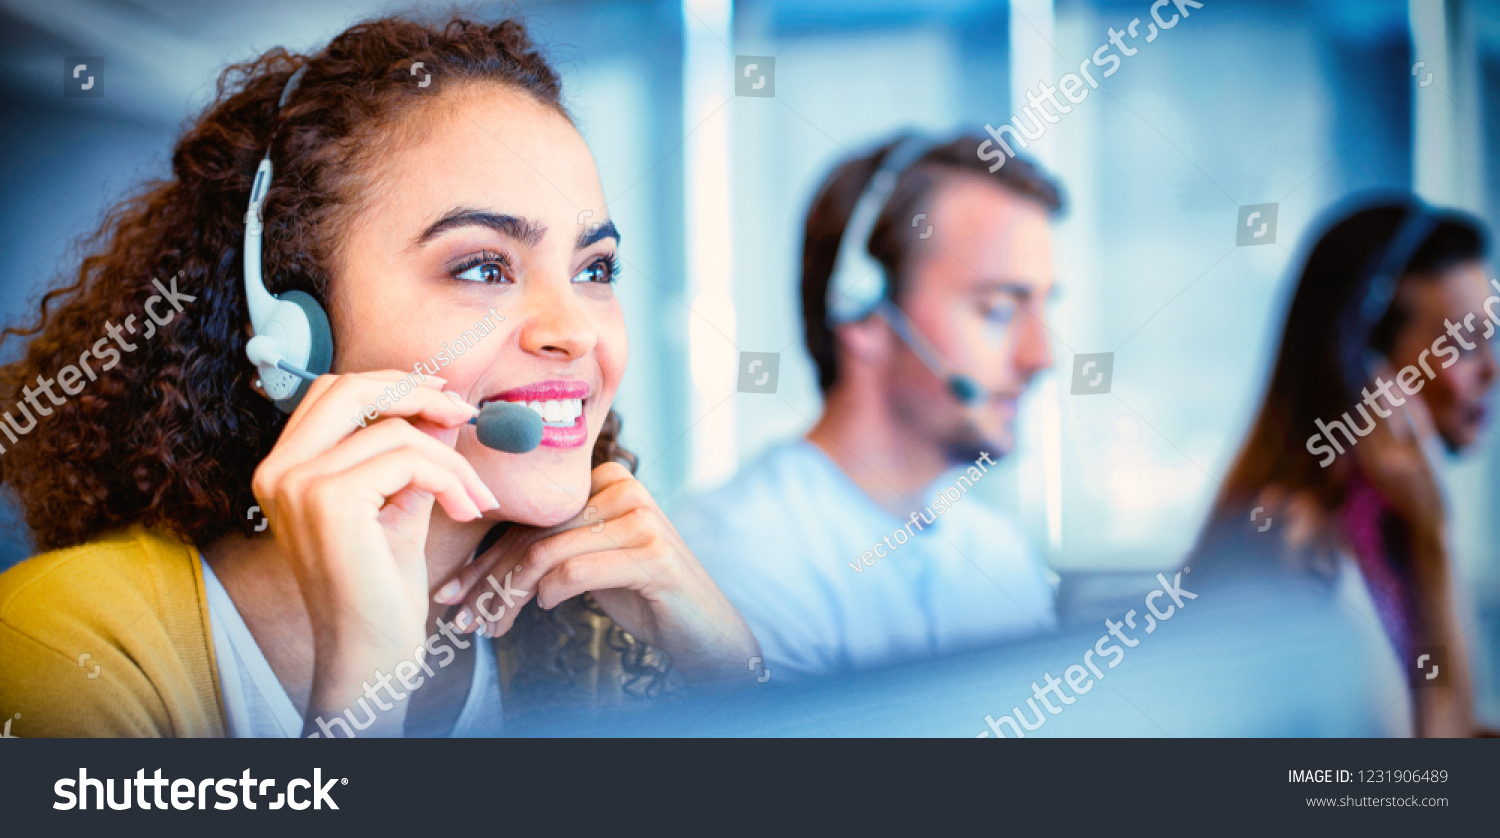 Customer service executive working at office #1231906489